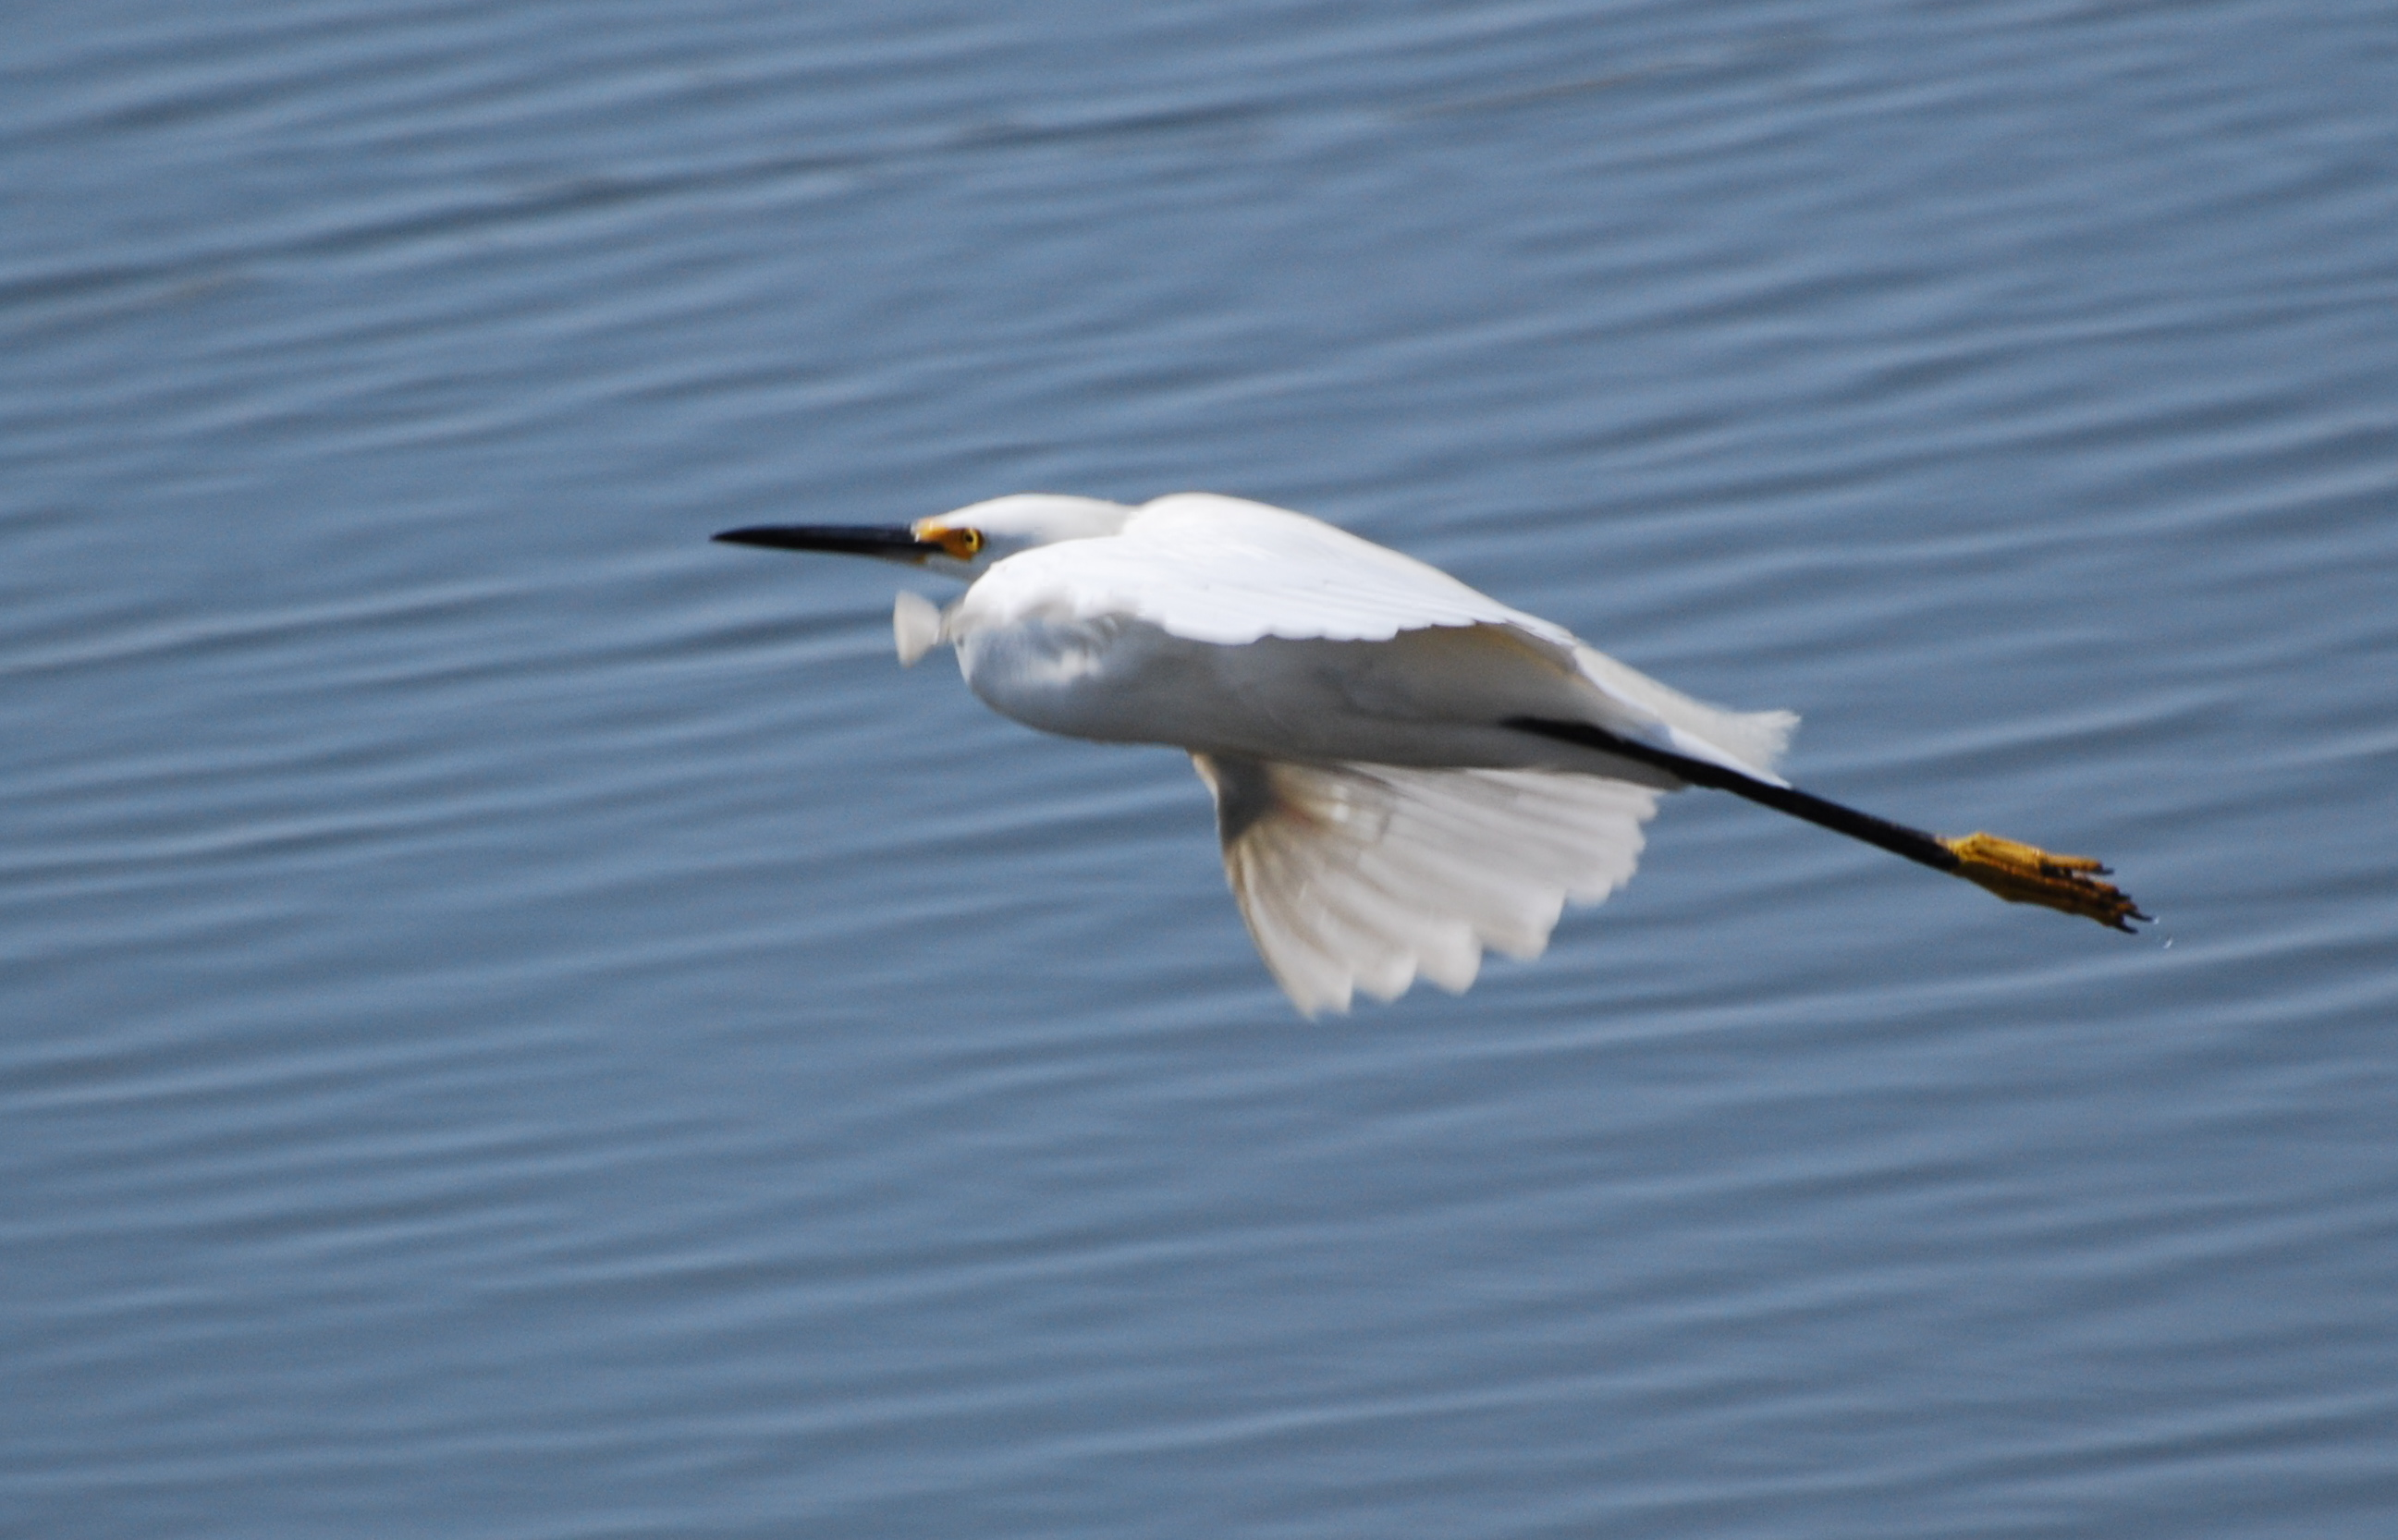 Snowy Egret in Flight171325.tmp/mysterybird.JPG